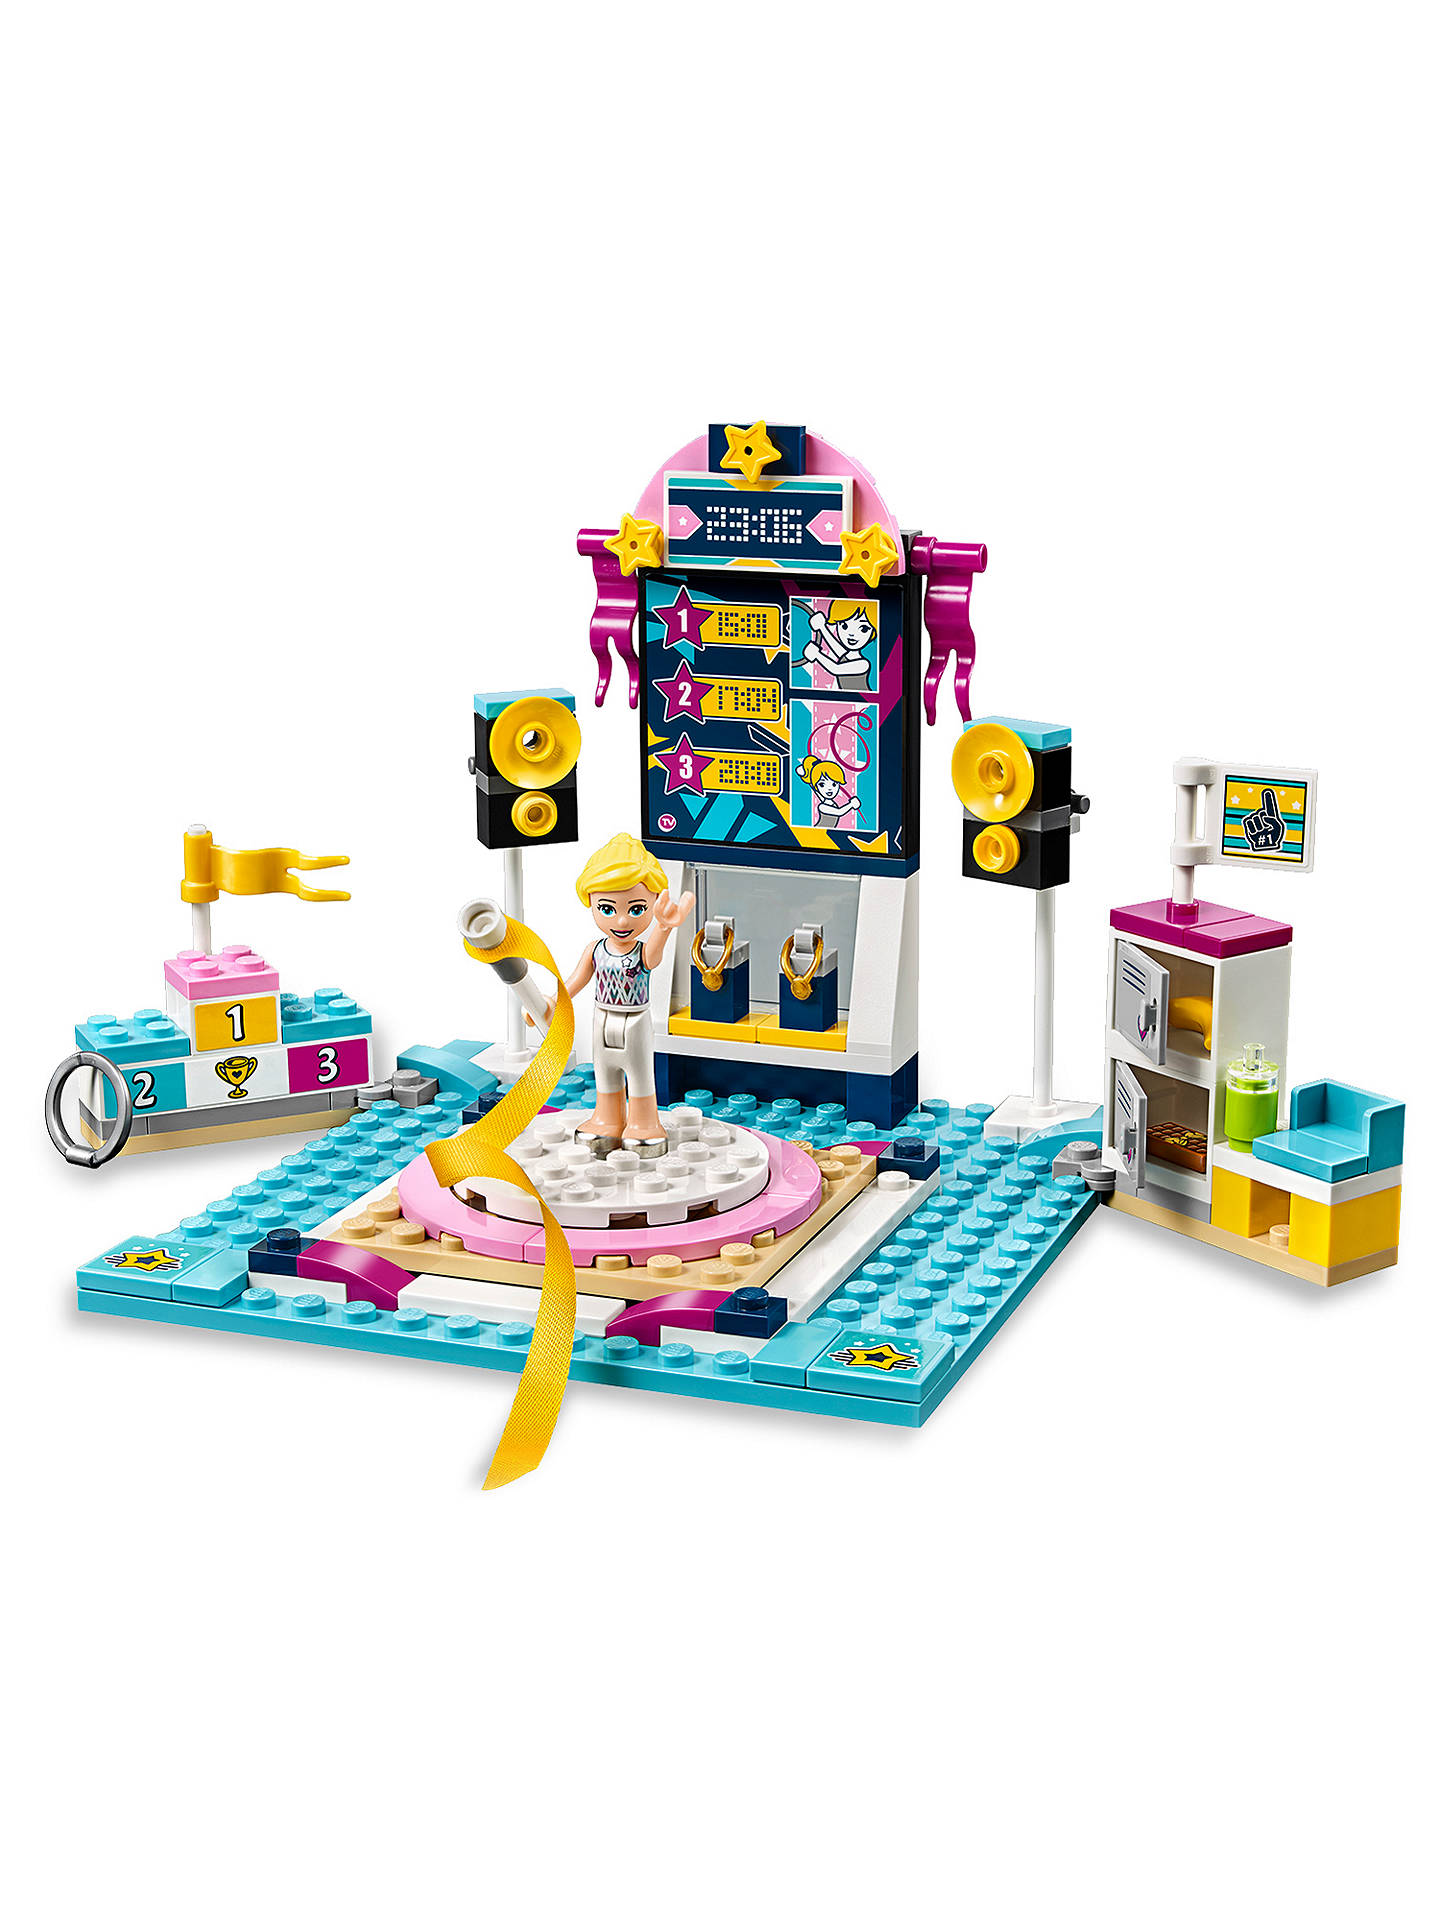 Lego Friends Christmas Sets.Lego Friends 41762 Stephanie S Gymnastics Show